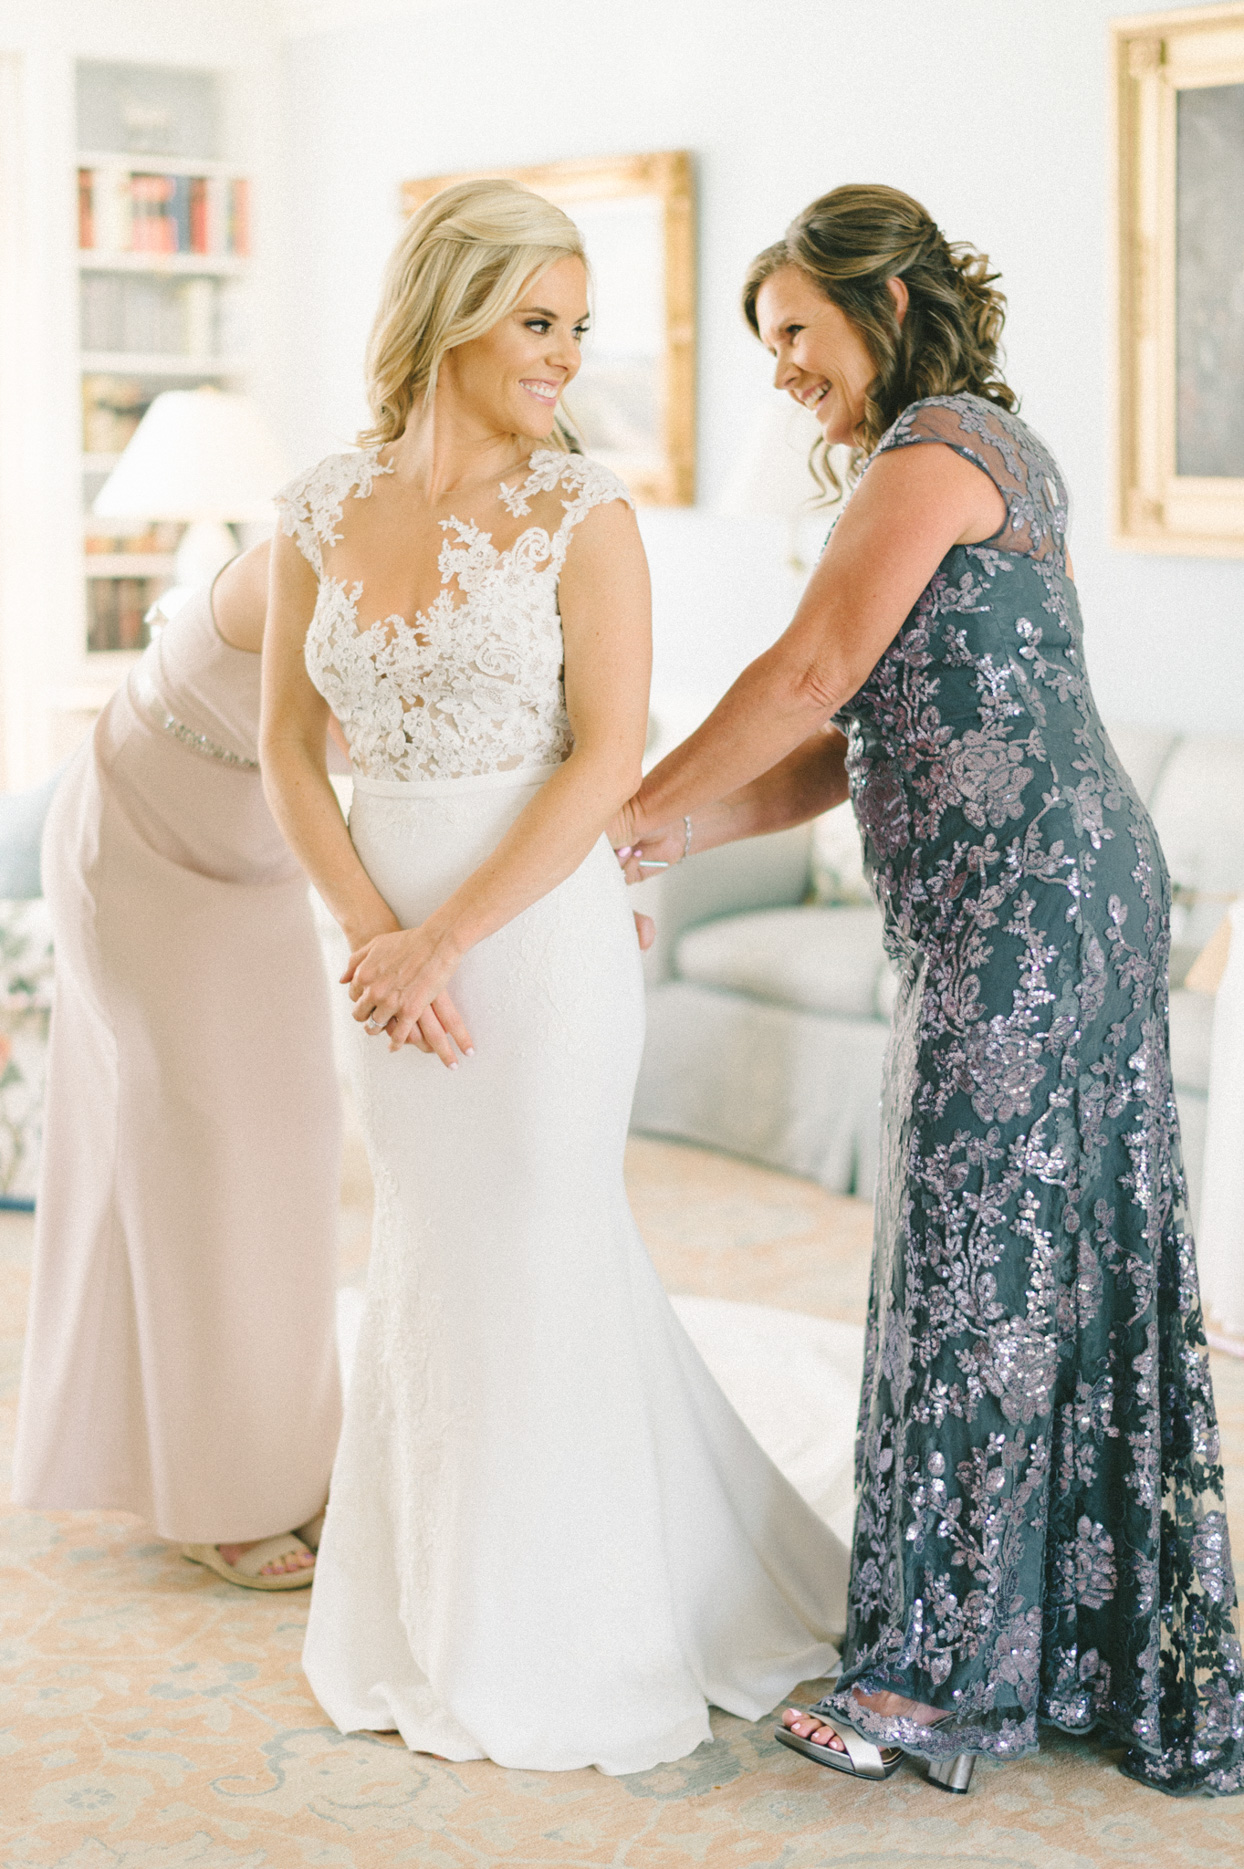 bride smiling as family helps her put on wedding dress